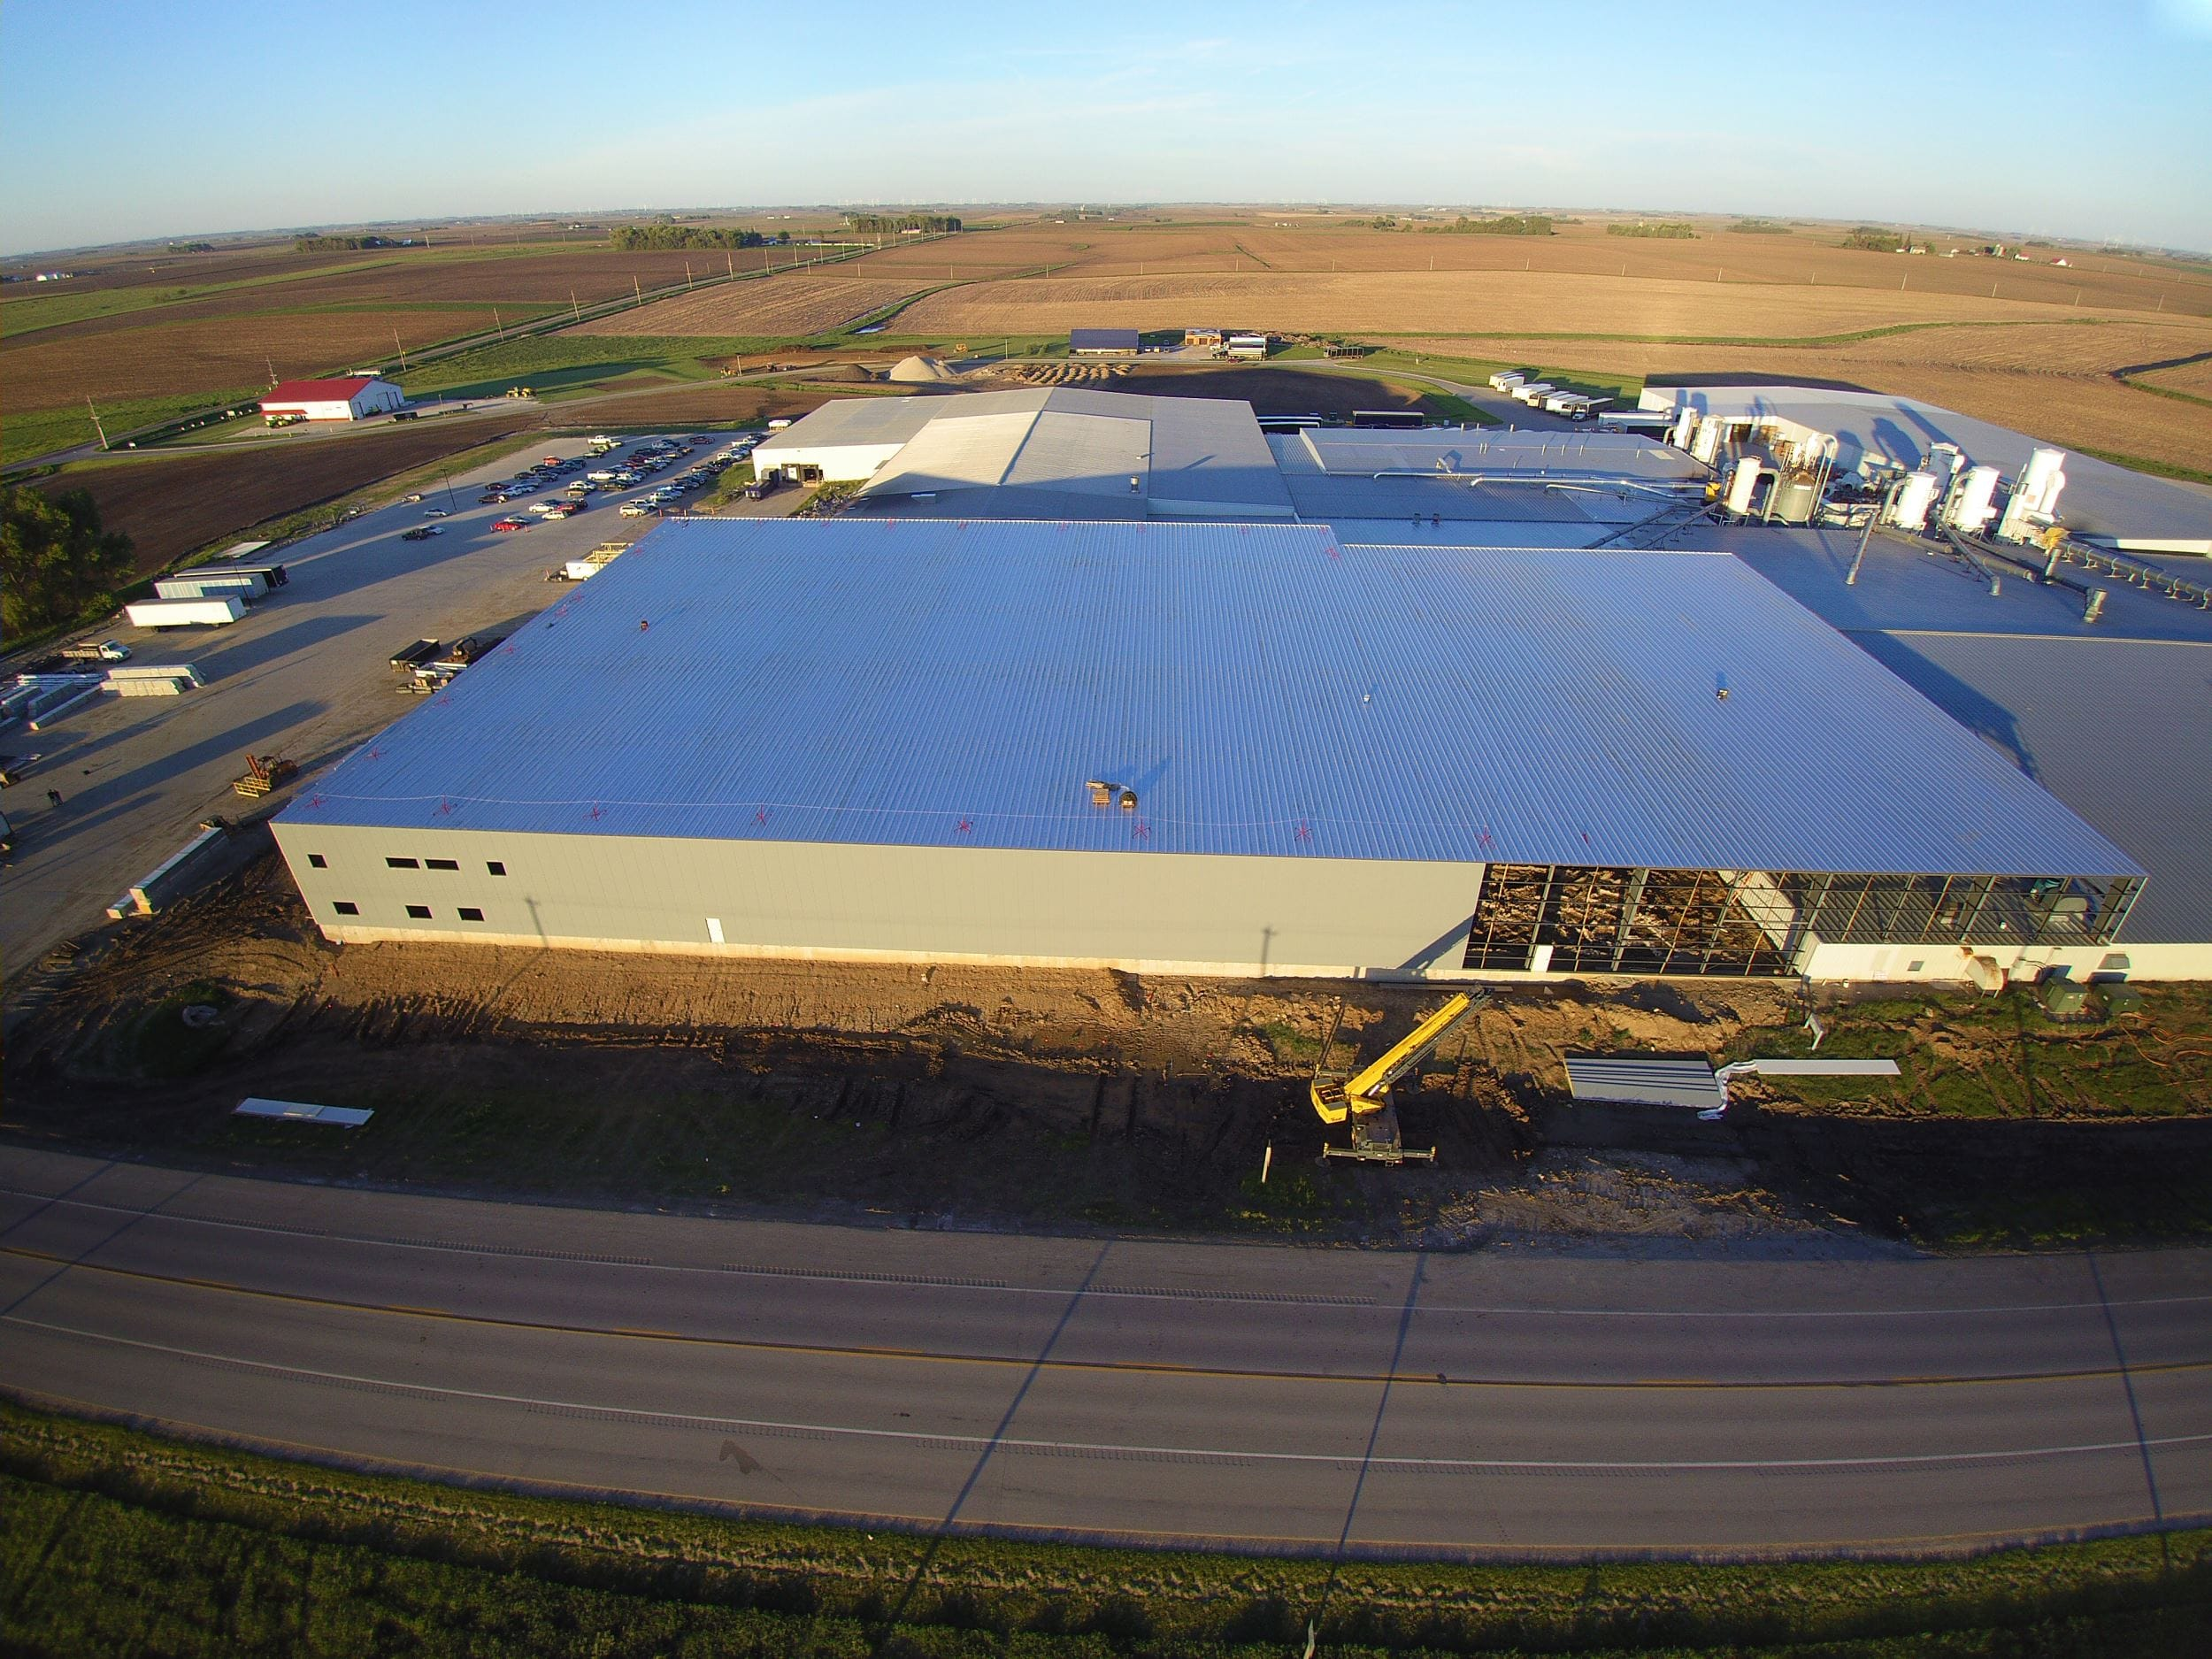 VT Industries Expands Holstein, Iowa Manufacturing Facility